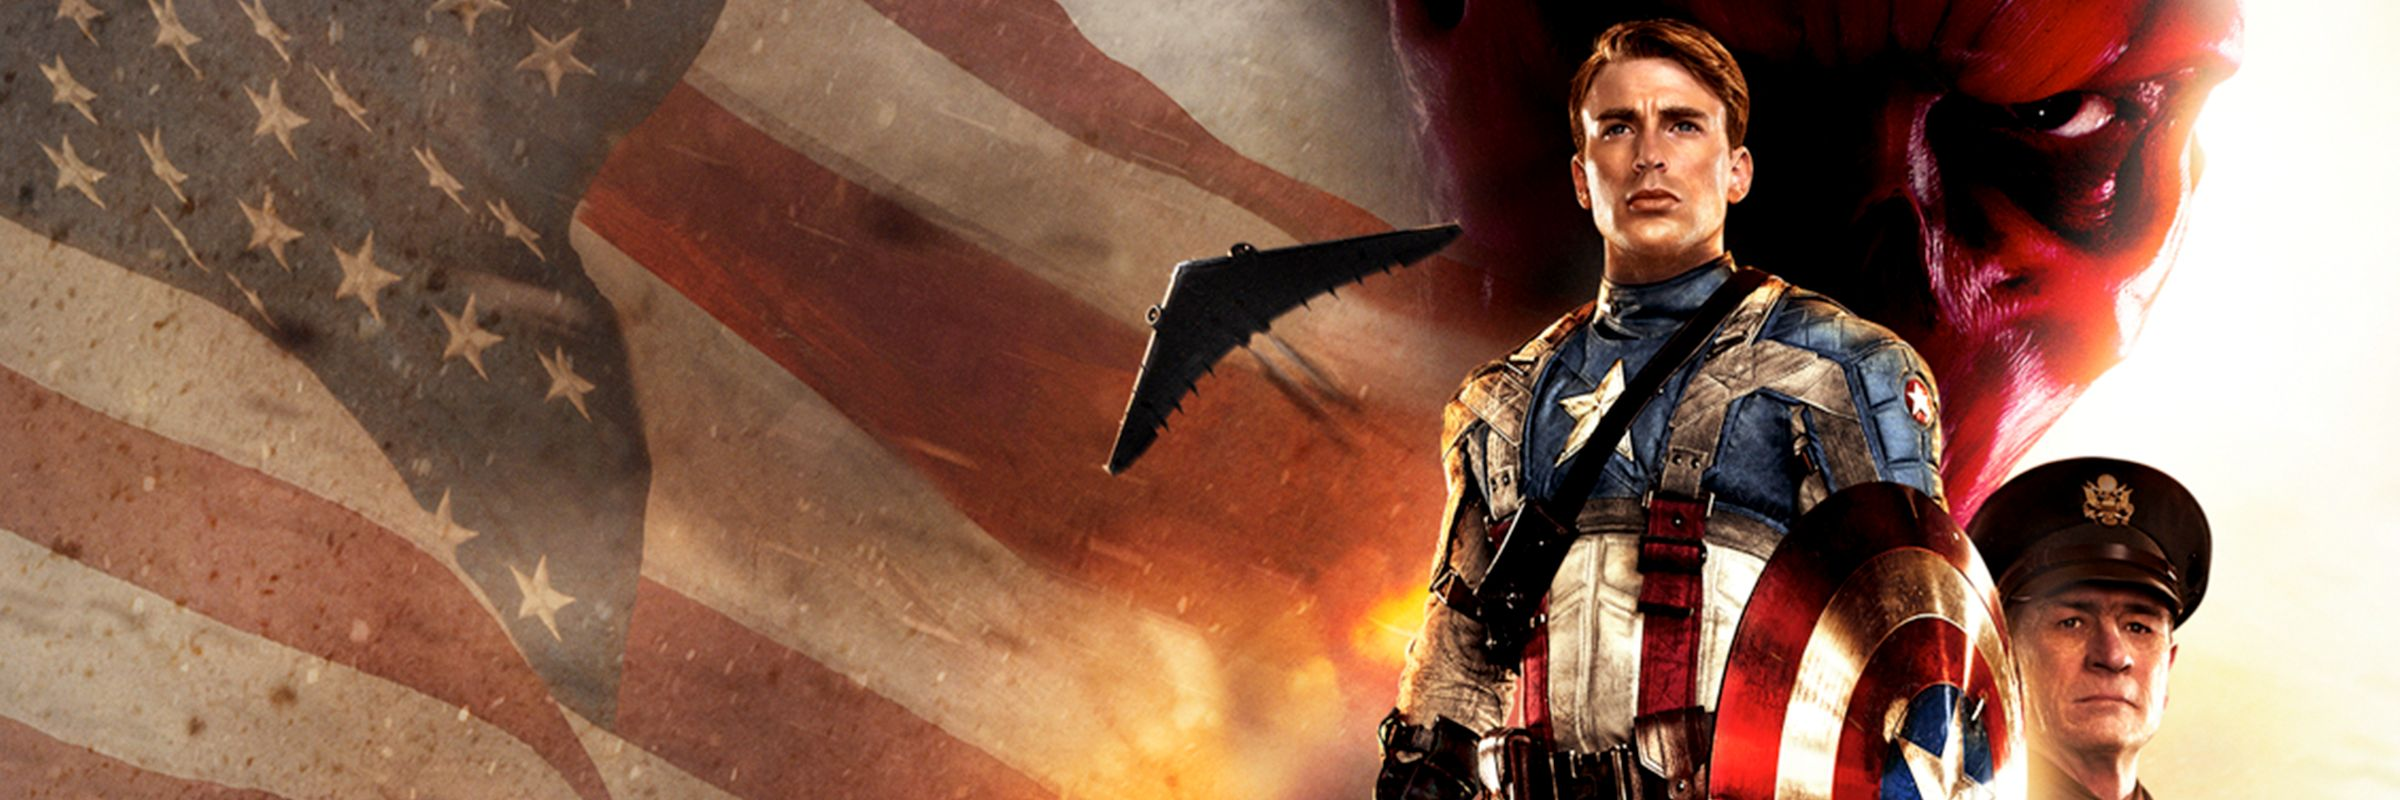 Marvel Studios' Captain America: The First Avenger | Full